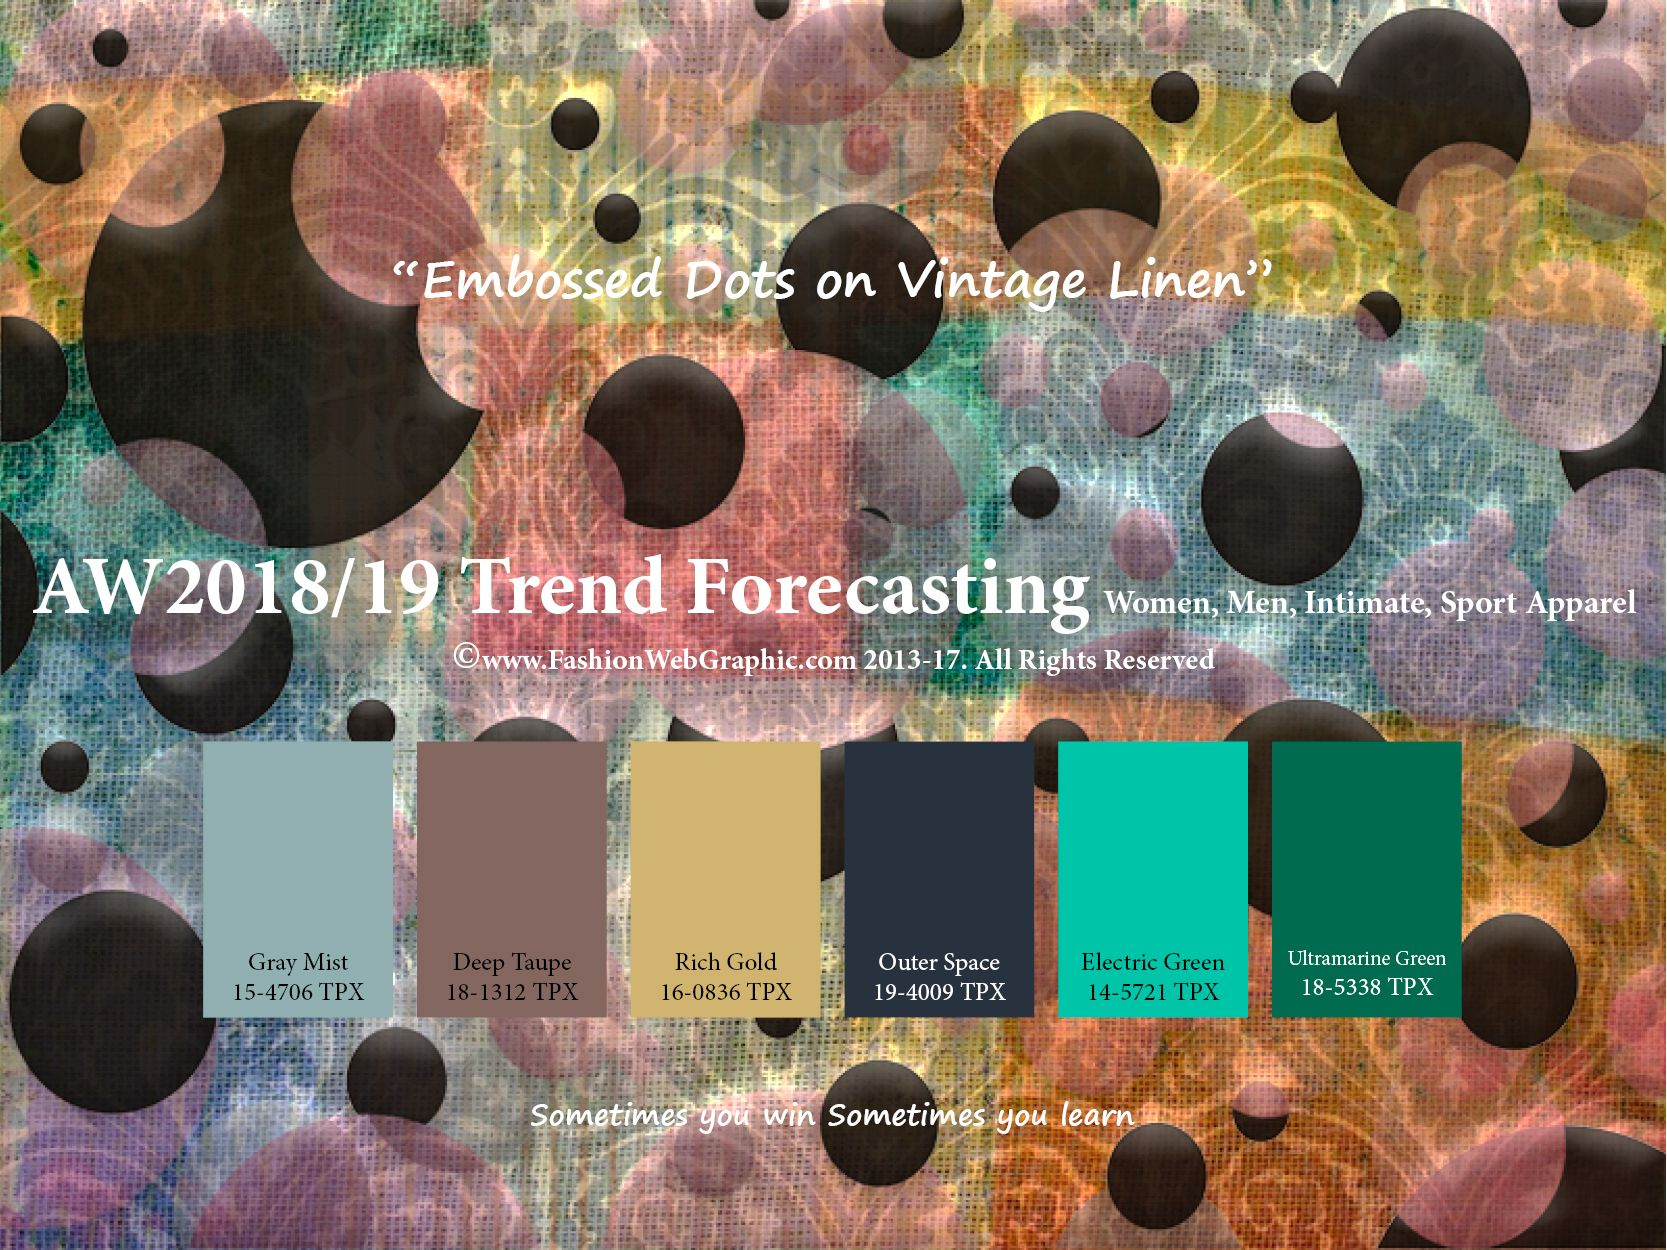 Autumn Winter 2018/2019 trend forecasting is A TREND/COLOR ...